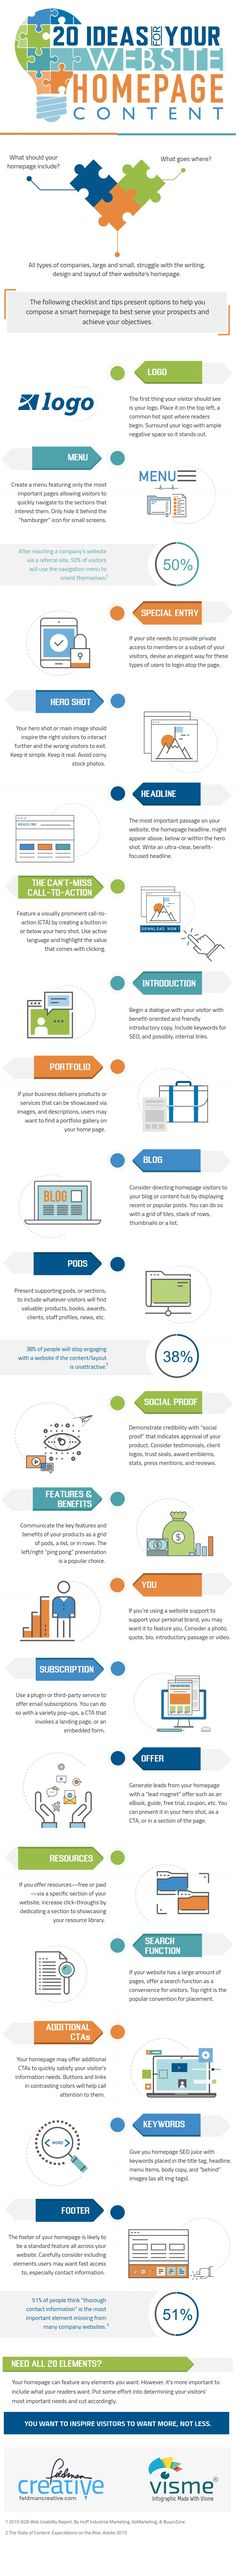 20 Ideas for Your Website Homepage Content [Infographic]